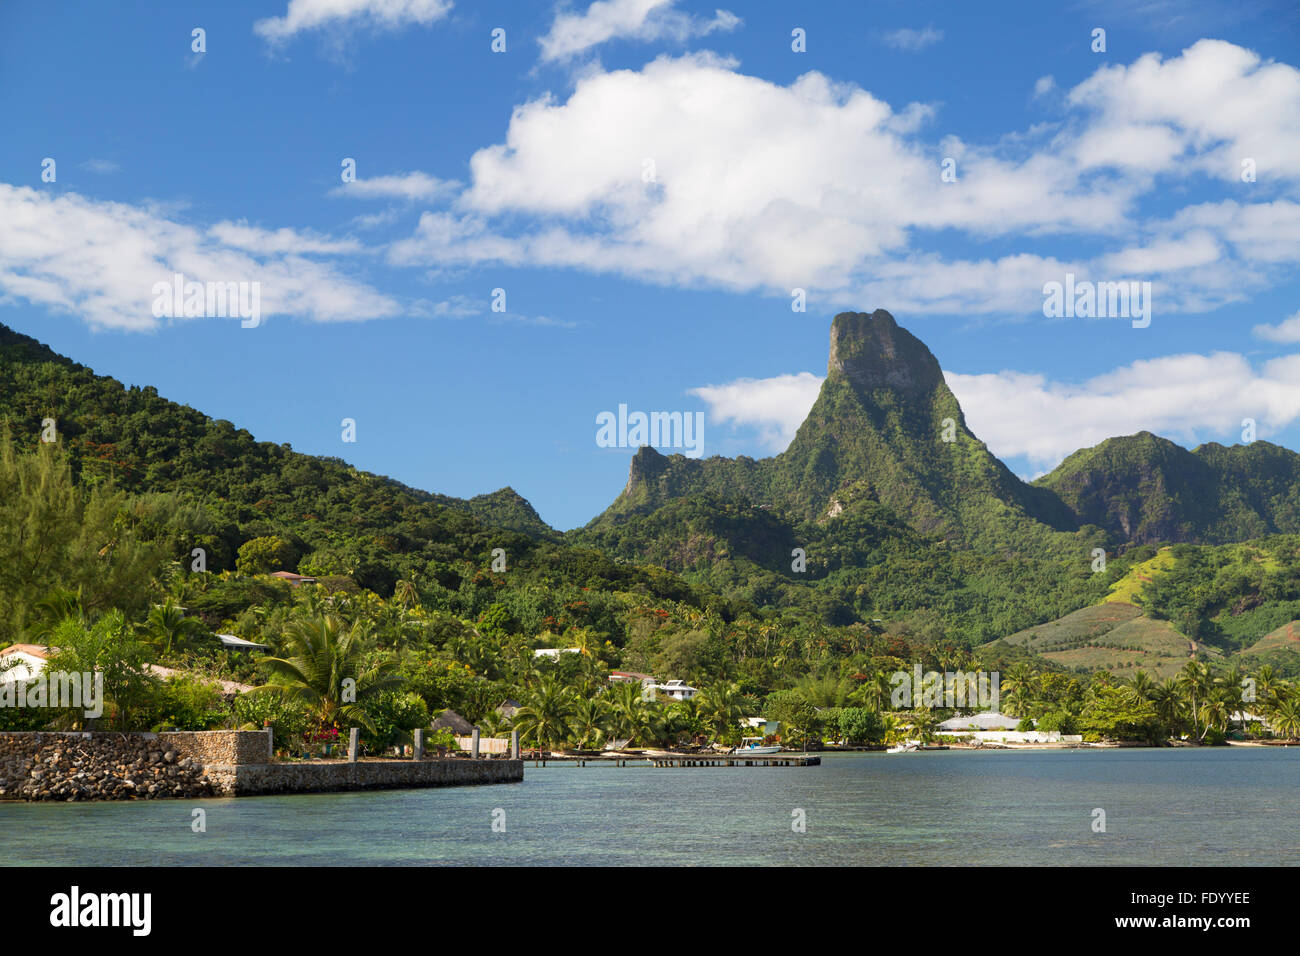 Cook's Bay, Mo'orea, Society Islands, French Polynesia - Stock Image